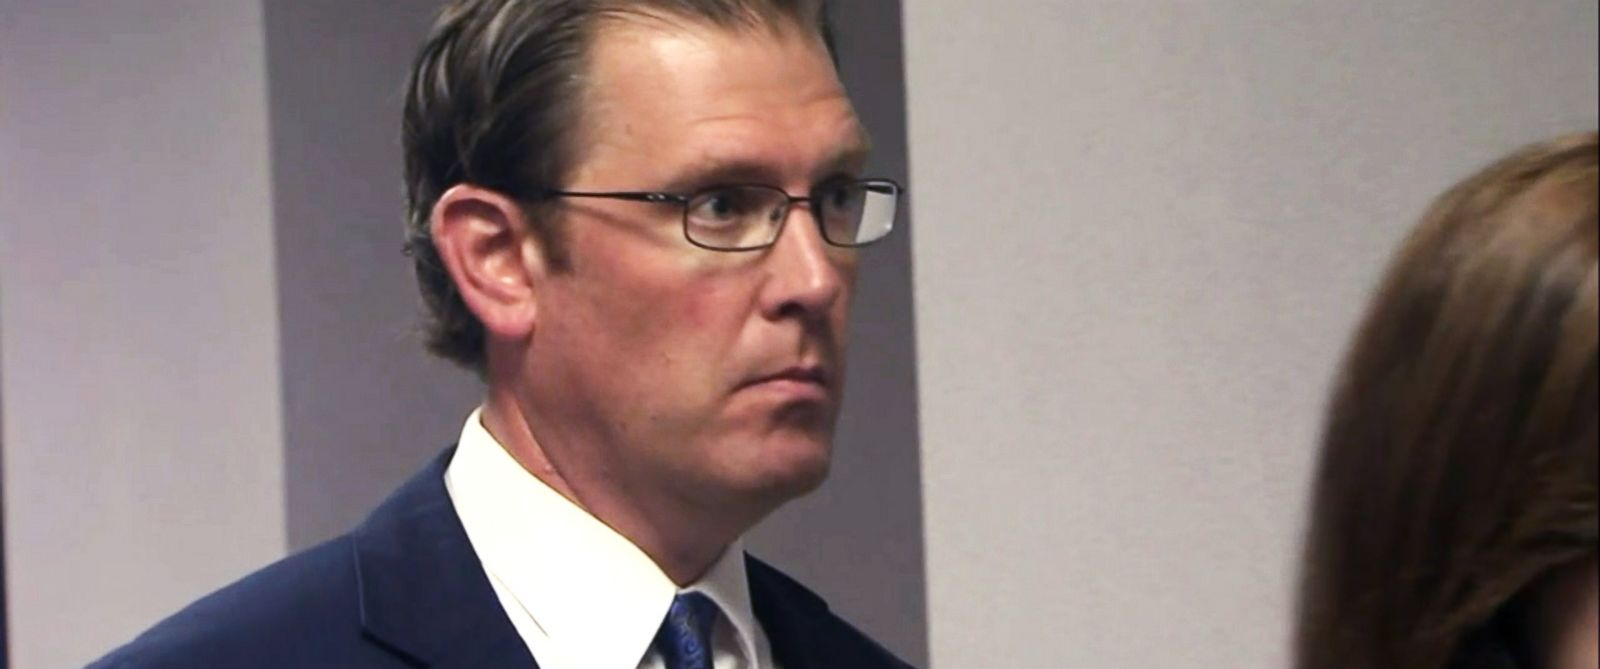 PHOTO: Police Lt. Matthew Kohr is seen in a Raleigh, N.C. court on May 11, 2015.